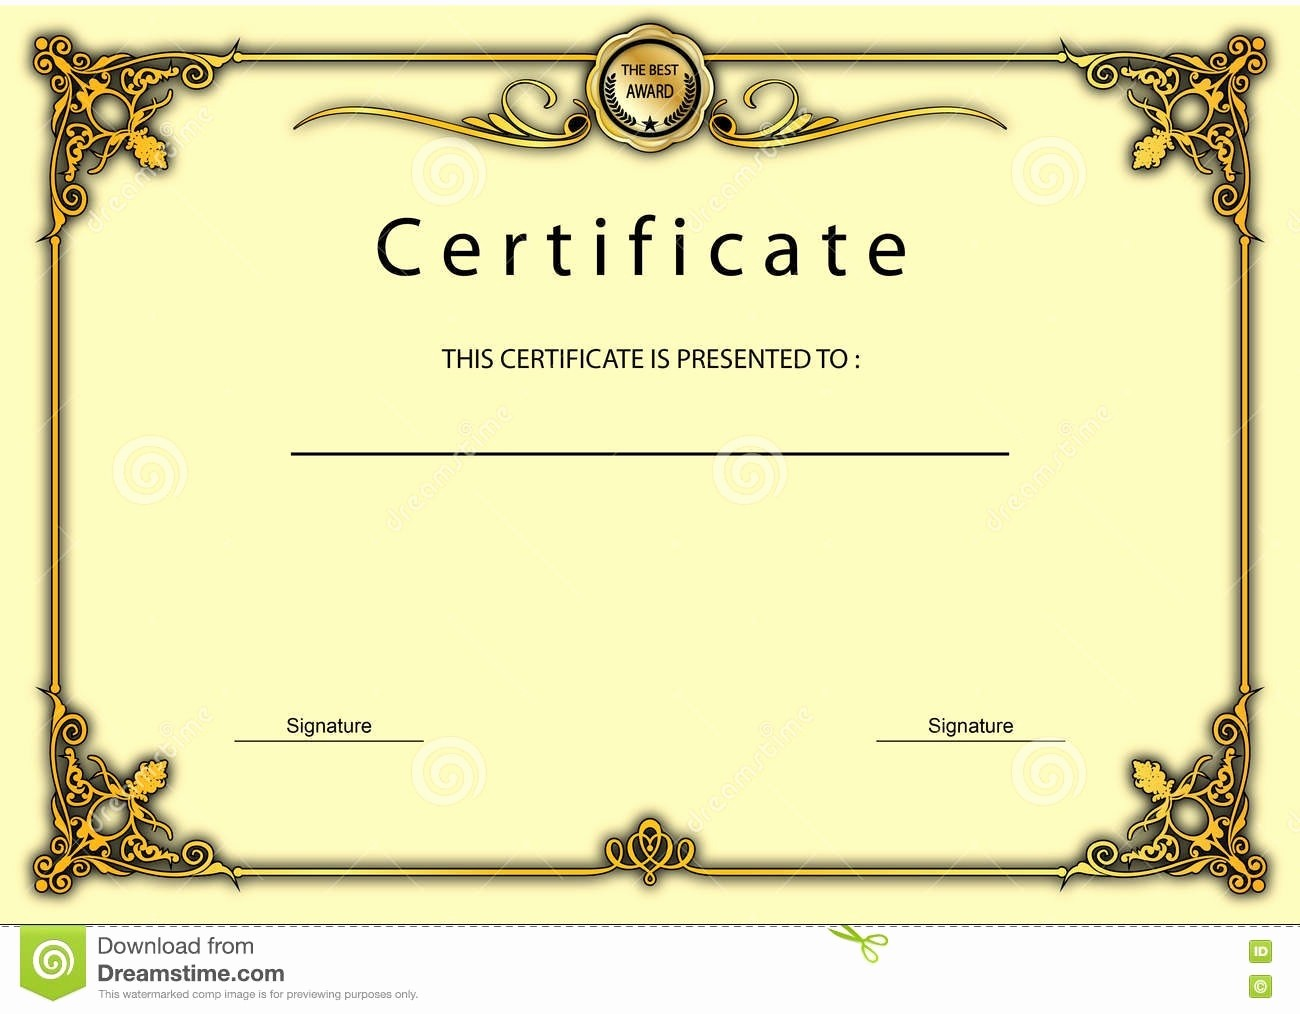 Border for Certificate Of Appreciation Luxury Certificate Appreciation Border Design